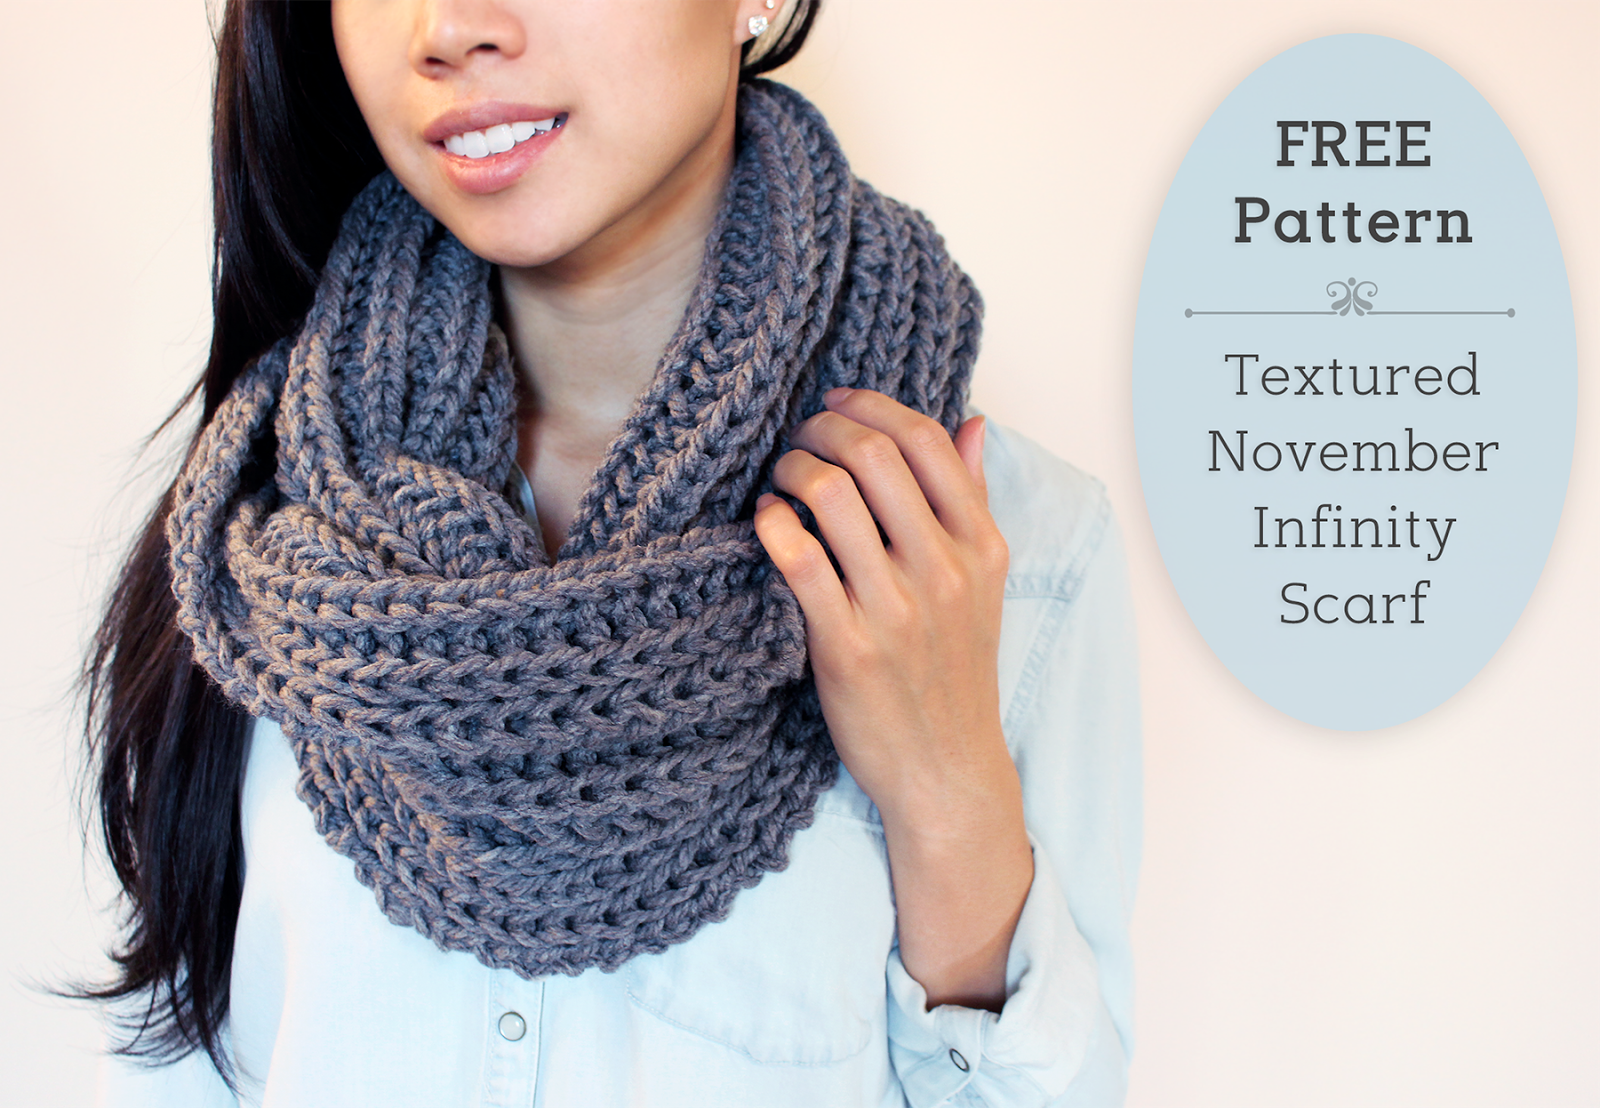 Purllin: Textured November Infinity Scarf Free Pattern